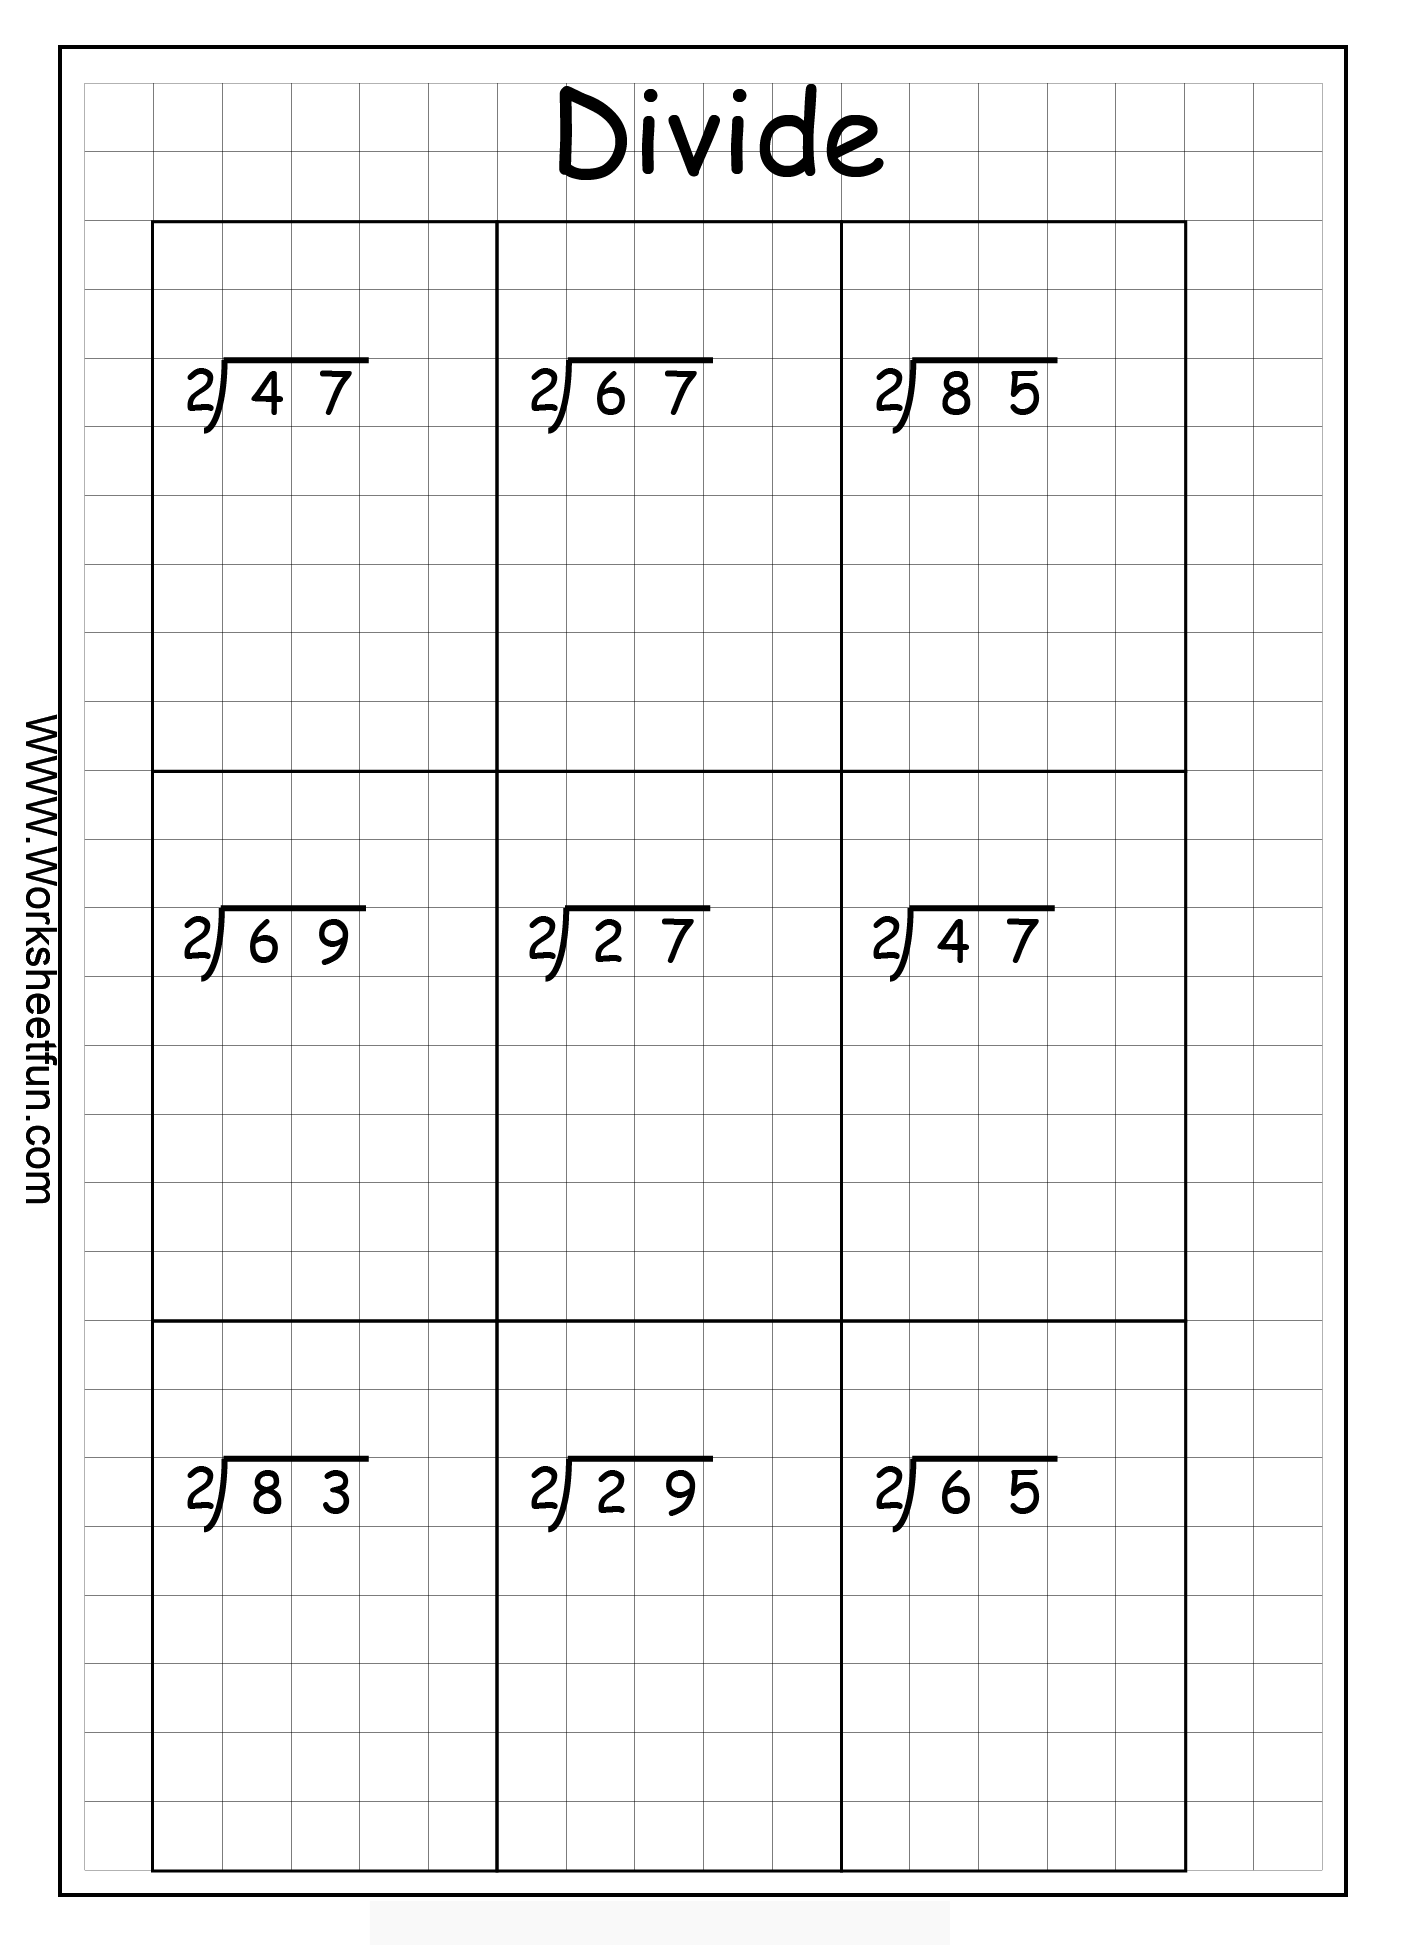 hight resolution of Pin by www.worksheetfun .com on Printable Worksheets   Division worksheets